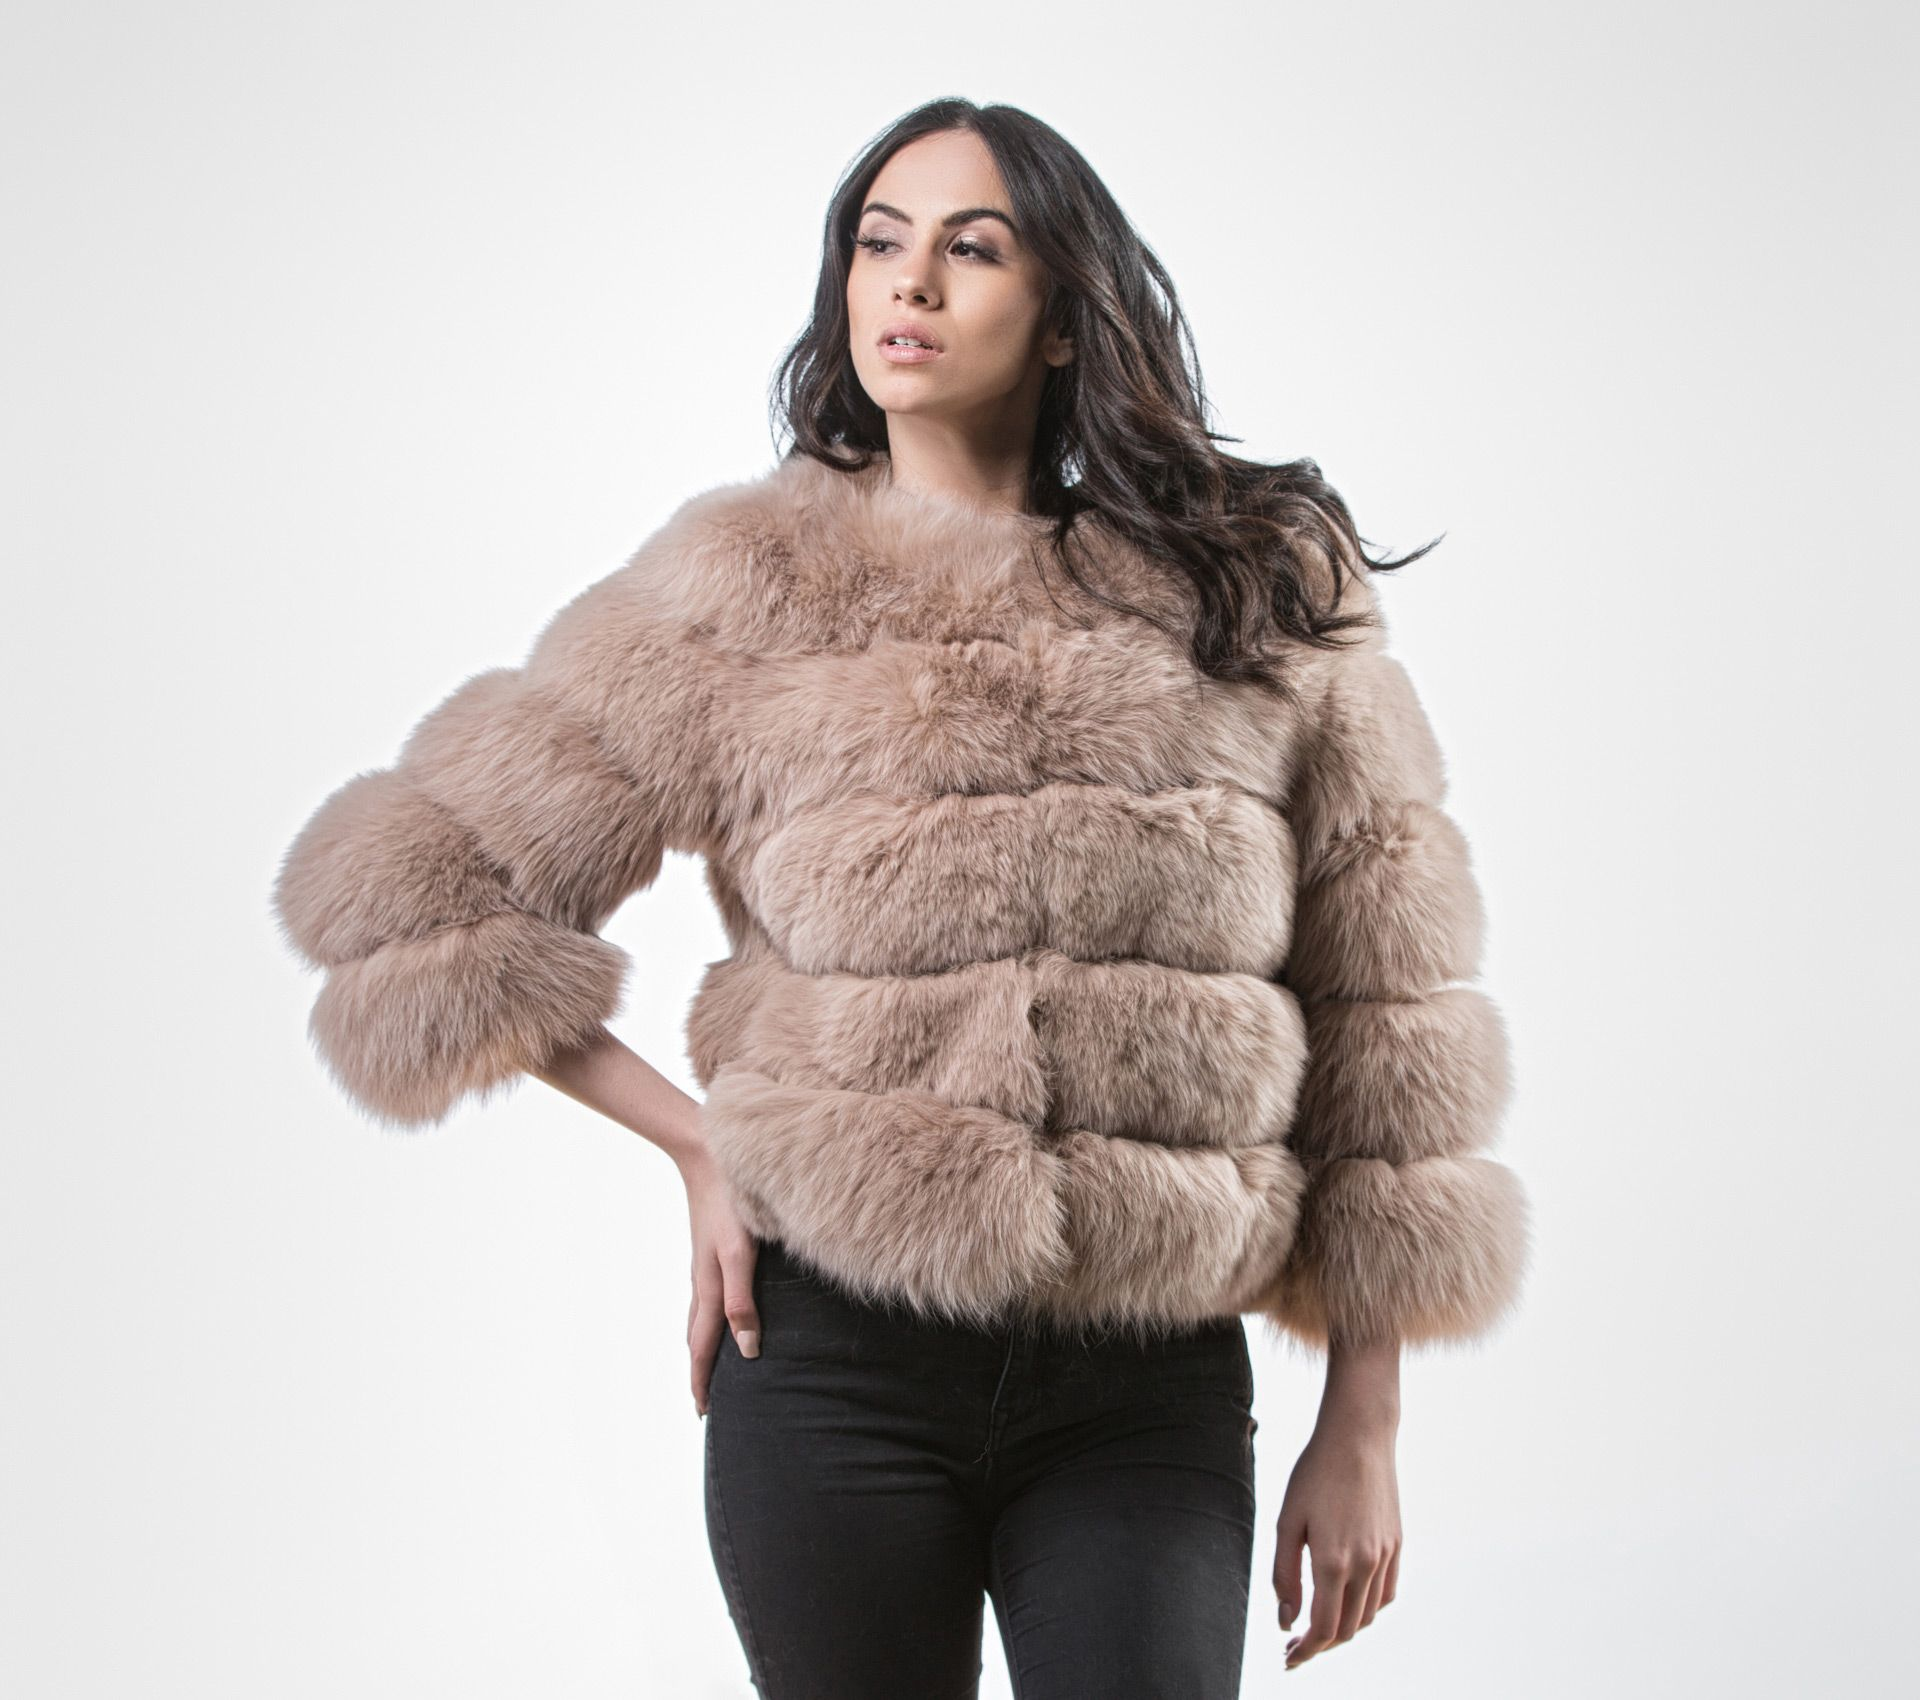 185cc5fa2 Beige Fox Jacket With 3/4 Sleeves #beige #fox #fur #jacket #real #style # realfur #naturalfur #elegant #haute #luxury#chic #outfit #women #classy  #online # ...